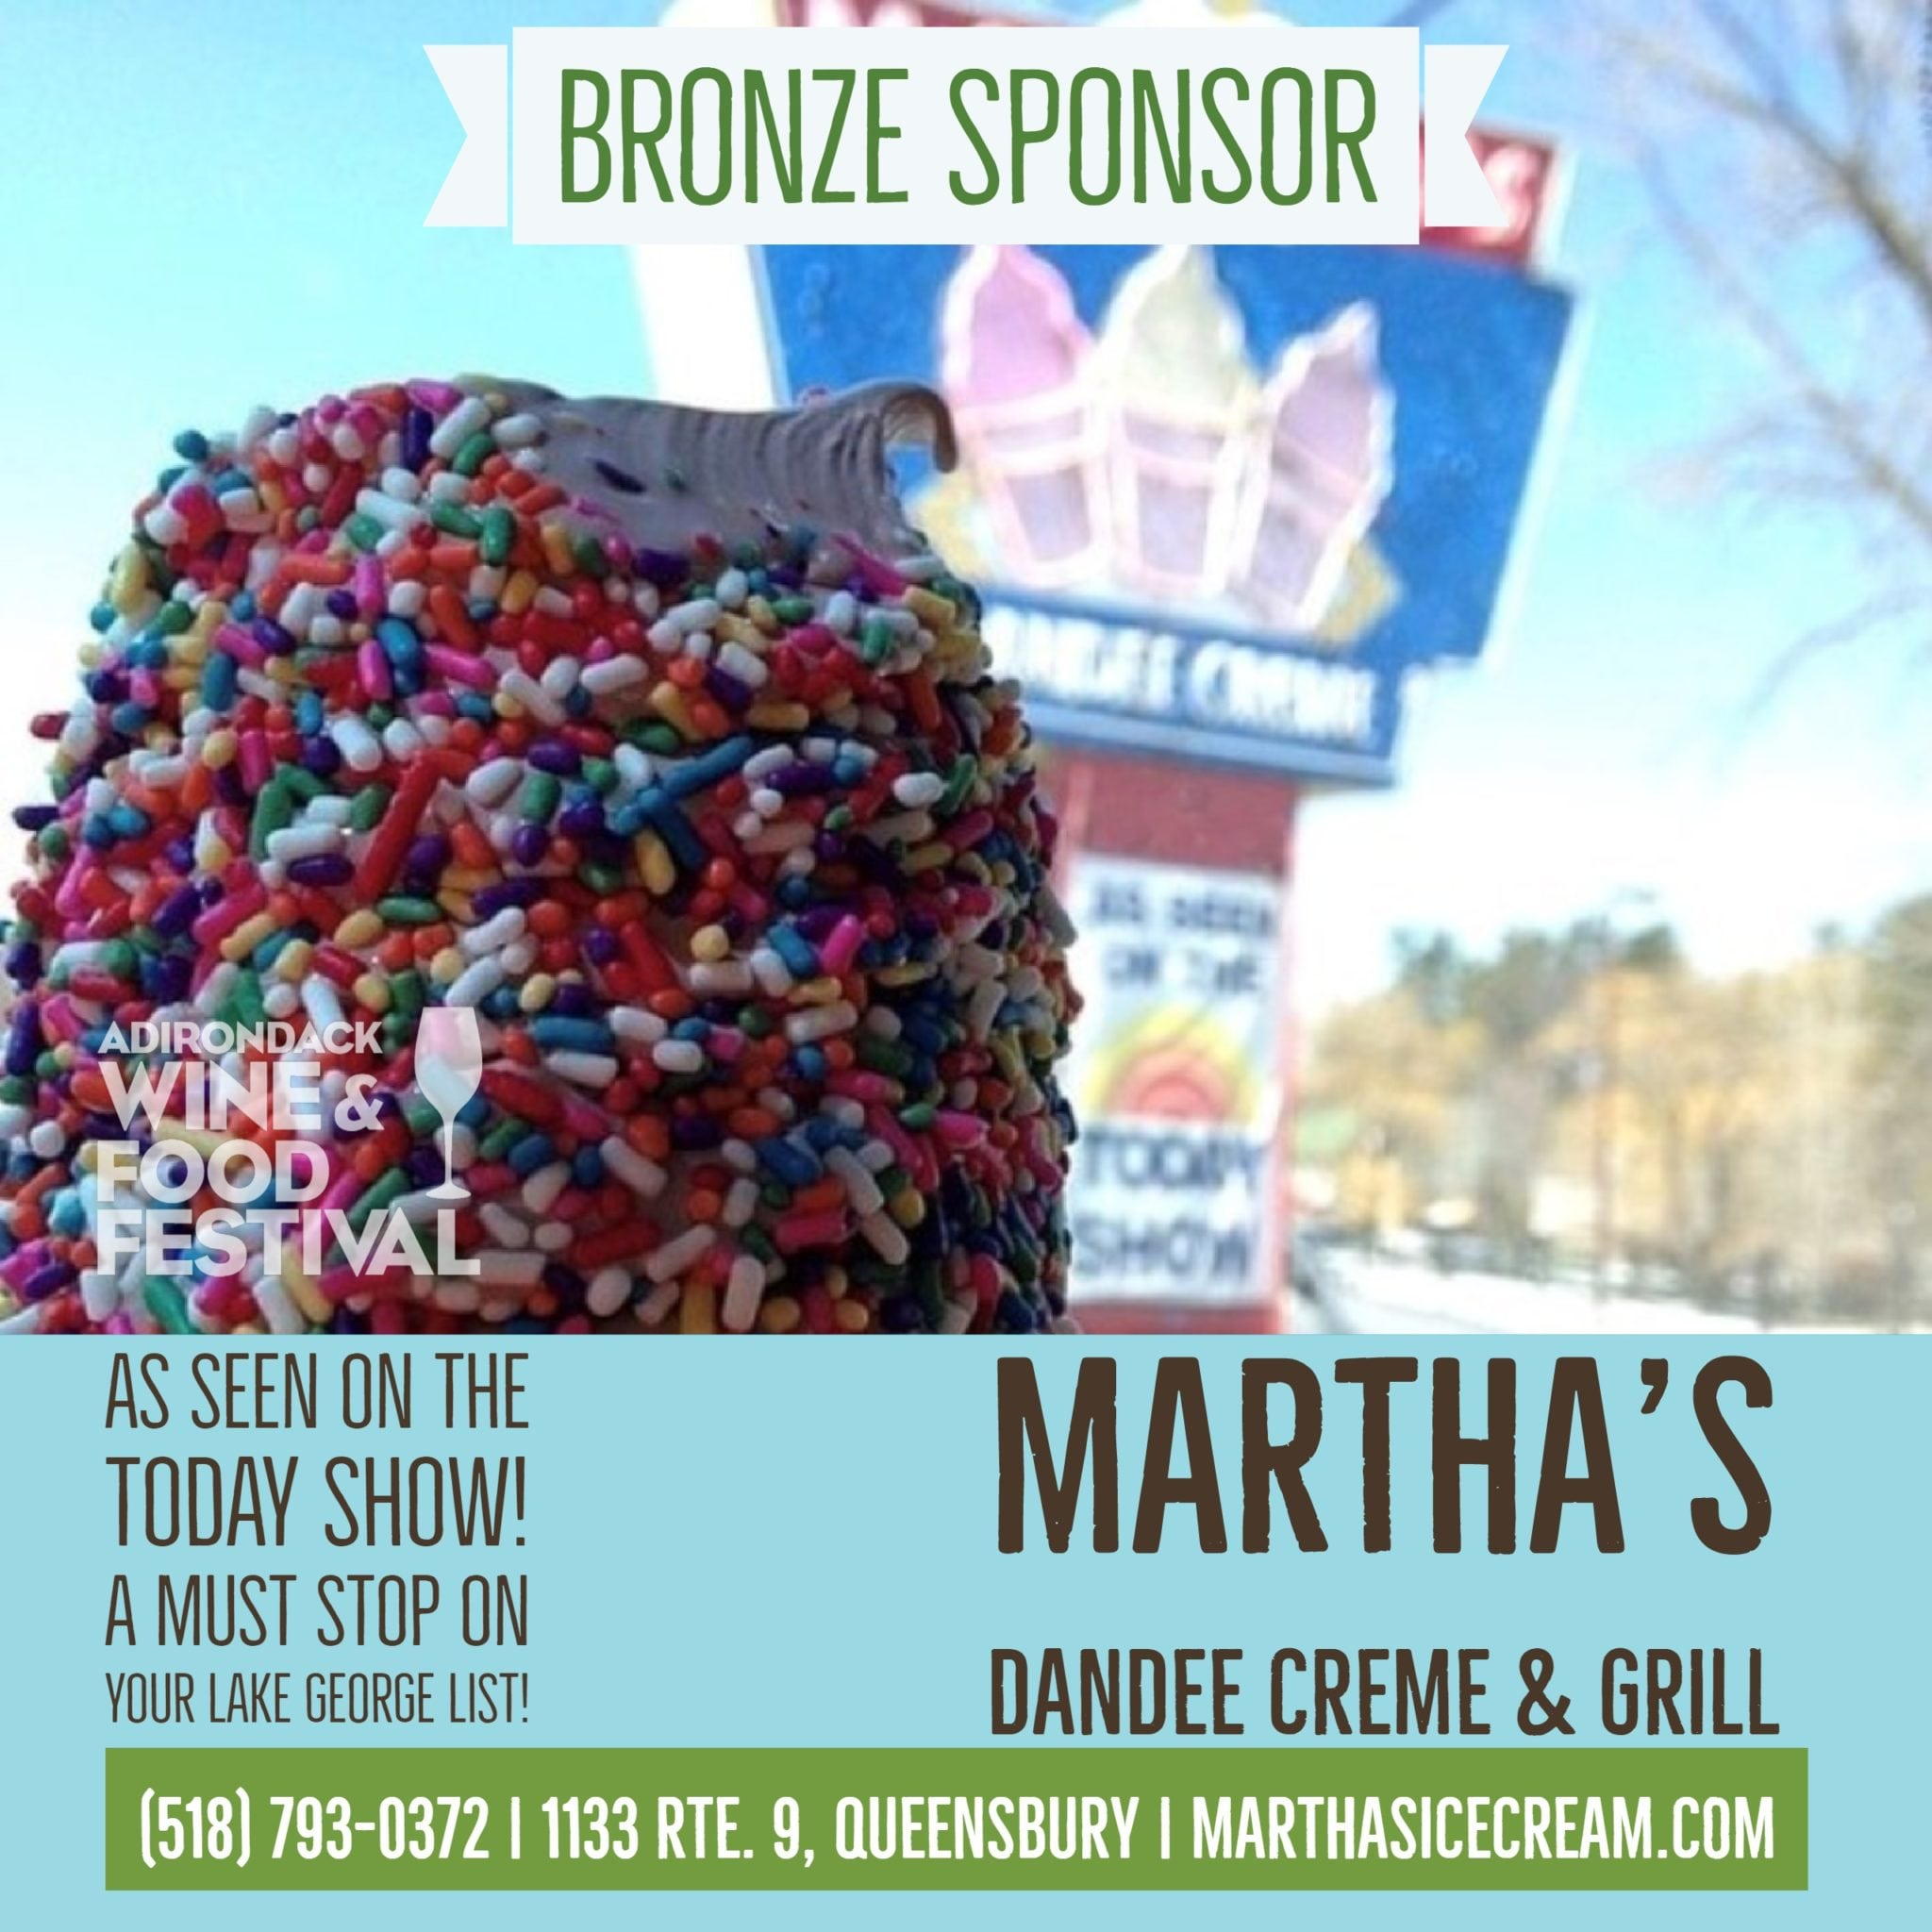 Marthas Dandee Creme & Grill